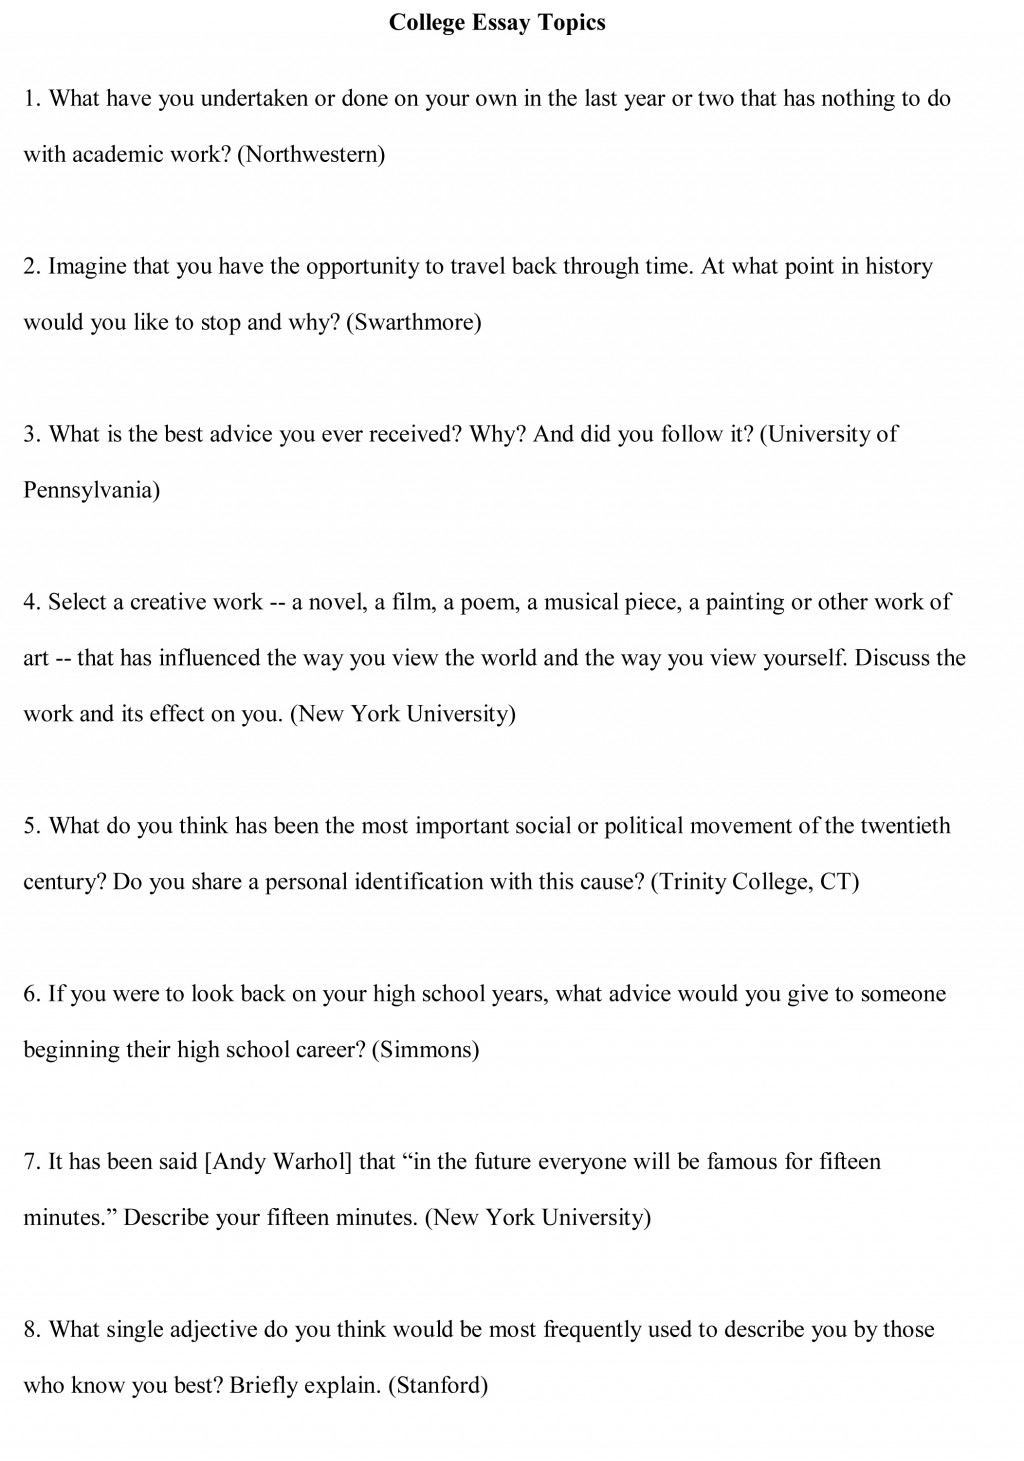 009 College Essay Topics Free Sample1 Prompts Unique Prompt Examples 1 Application Large